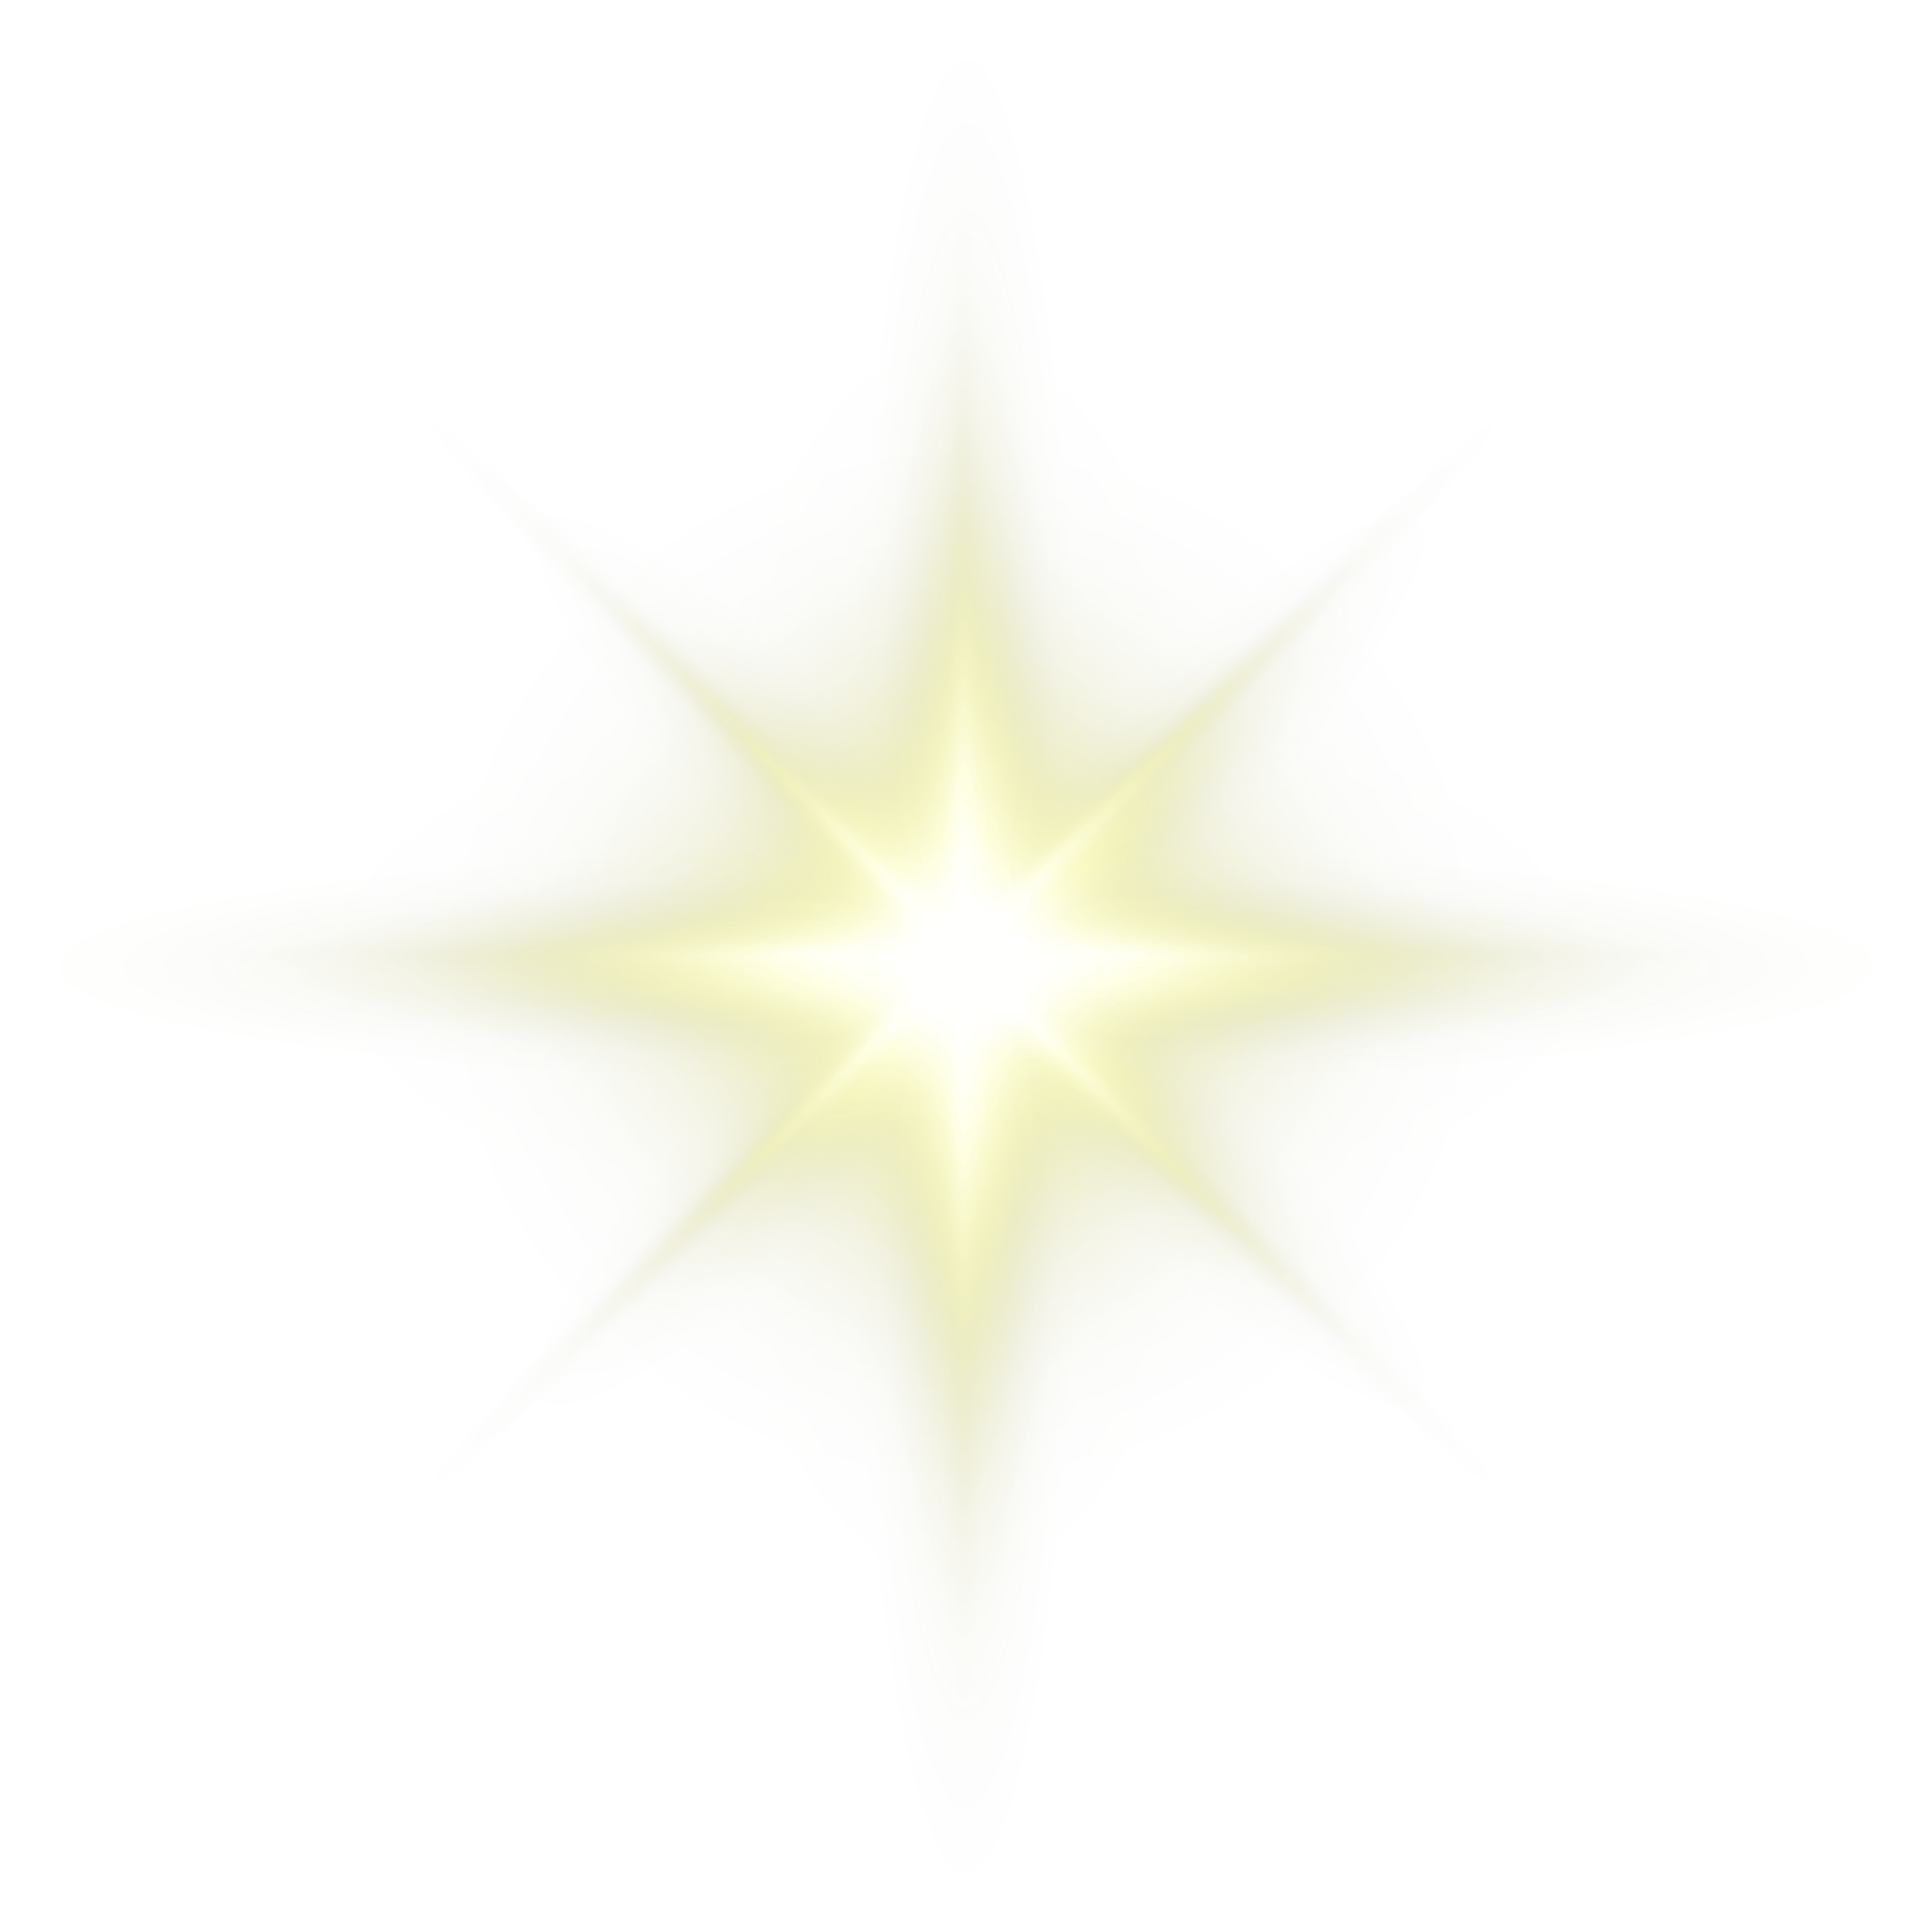 Star light clipart clipart royalty free library Light Effect PNG Clip Art | Gallery Yopriceville - High-Quality ... clipart royalty free library